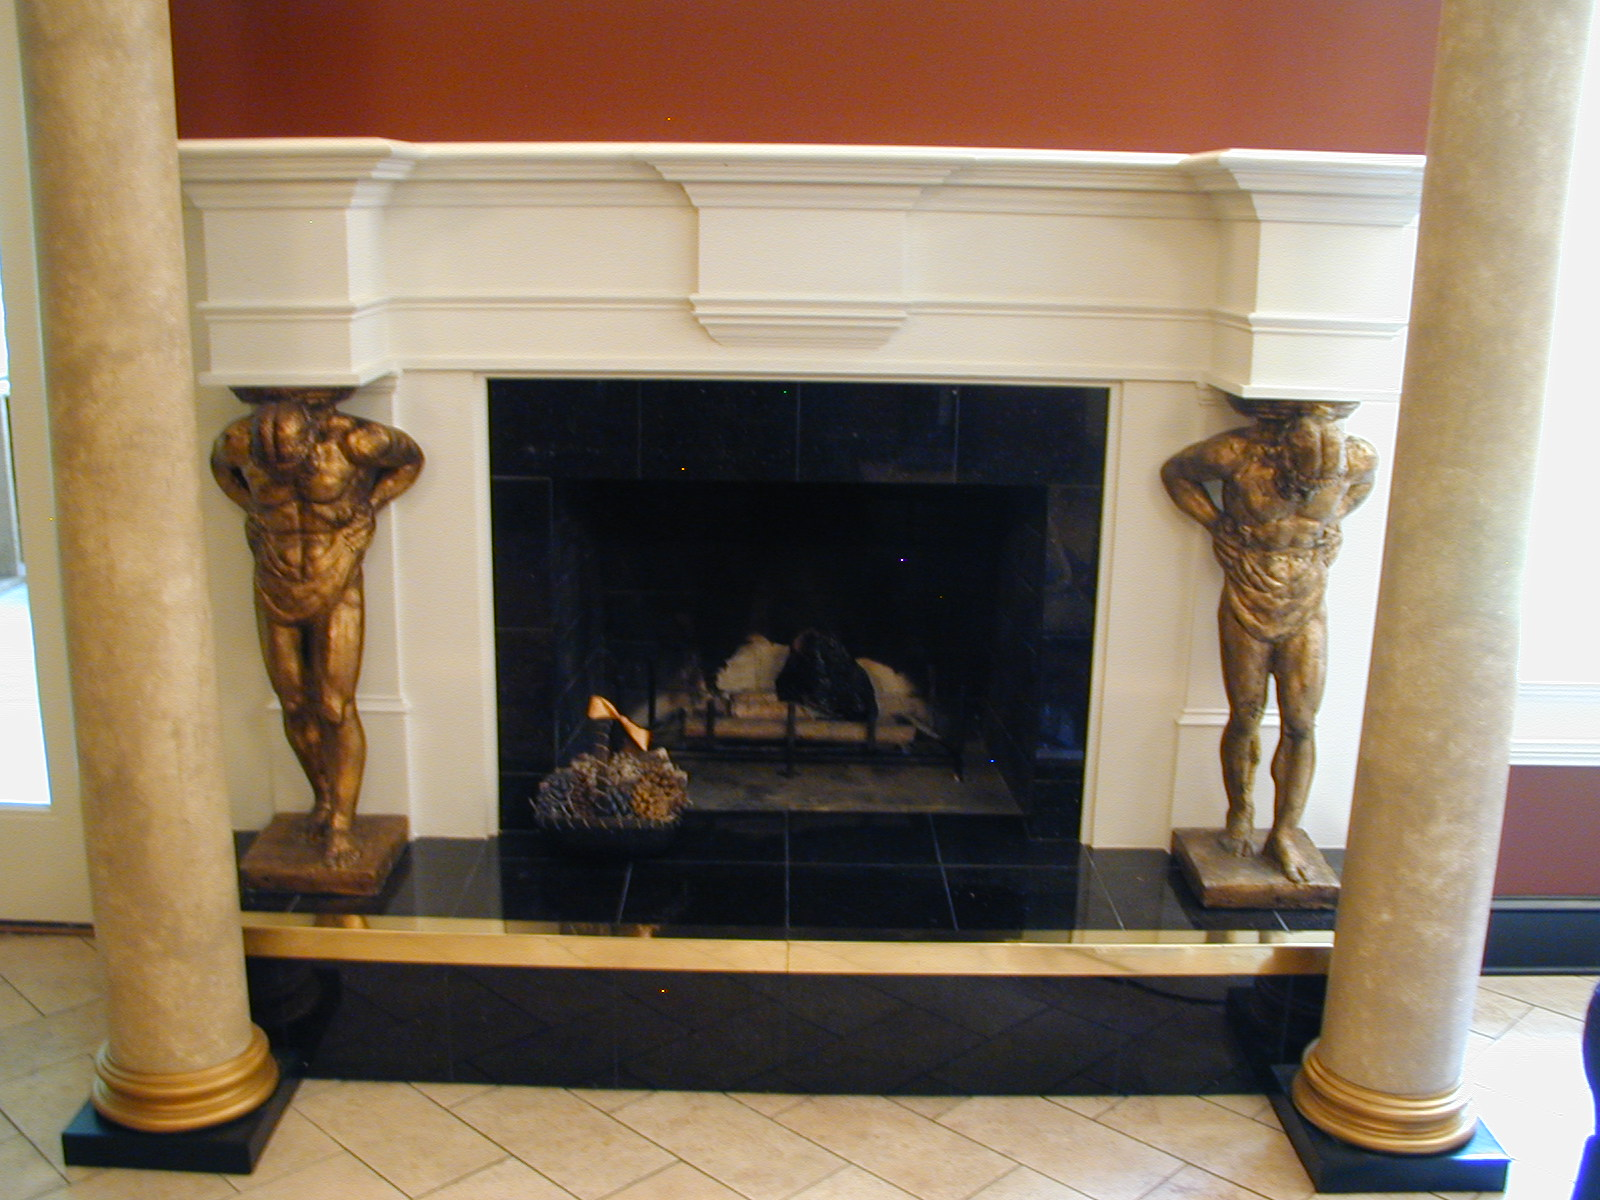 Redesigned Fireplace